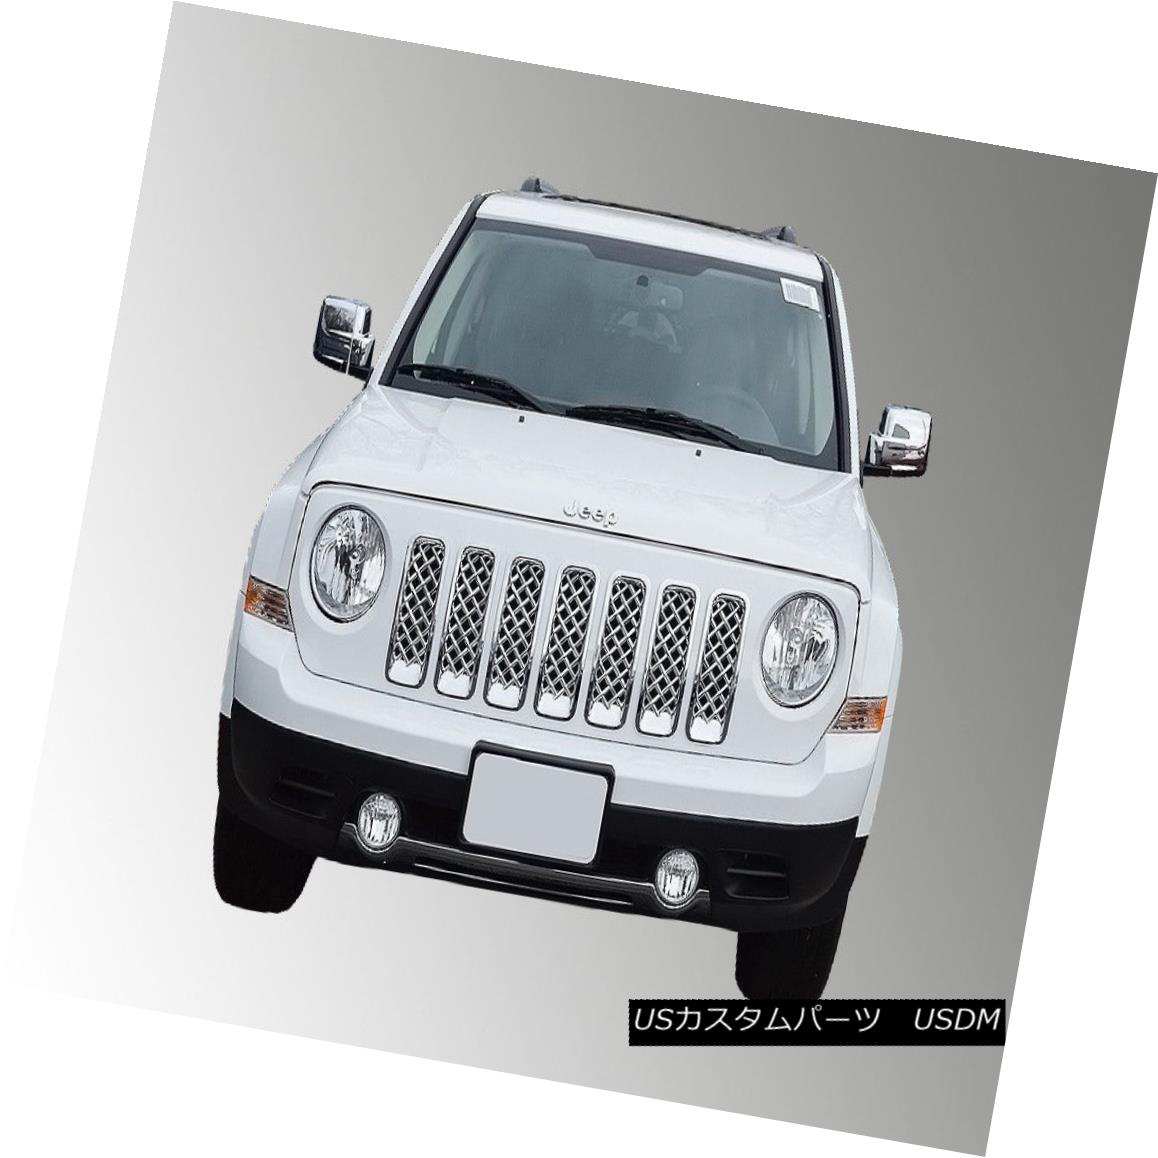 グリル ABS Grille ABS419 for Jeep Patriot 2011 - 2015 Jeep Patriot 2011 - 2015用ABSグリルABS419